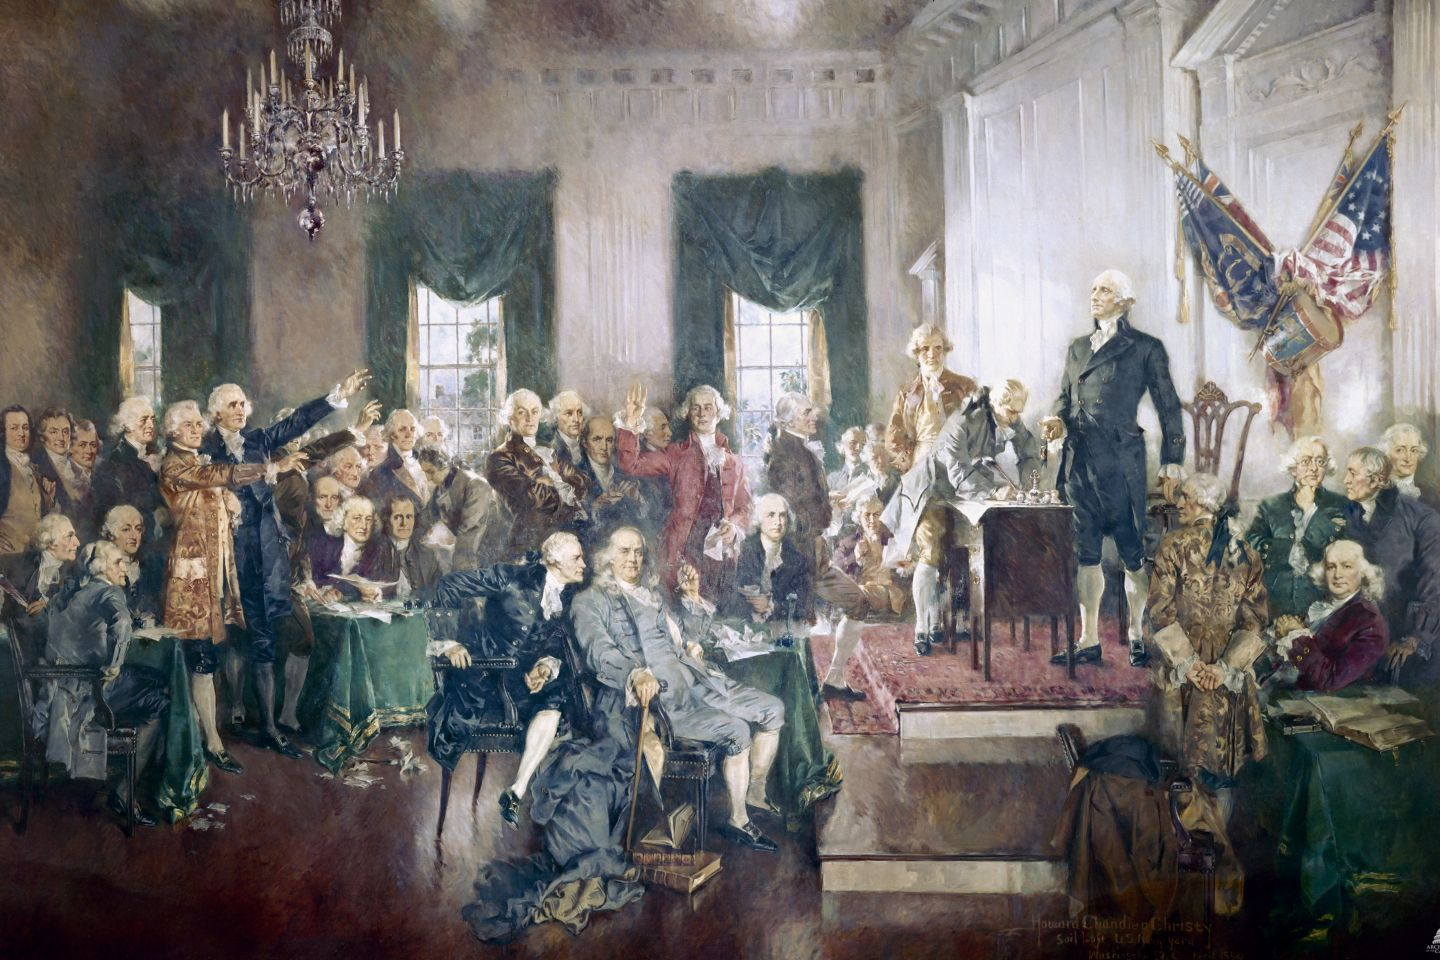 HIST 120 Getting to Union: Navigating Differences in the Constitutional Convention